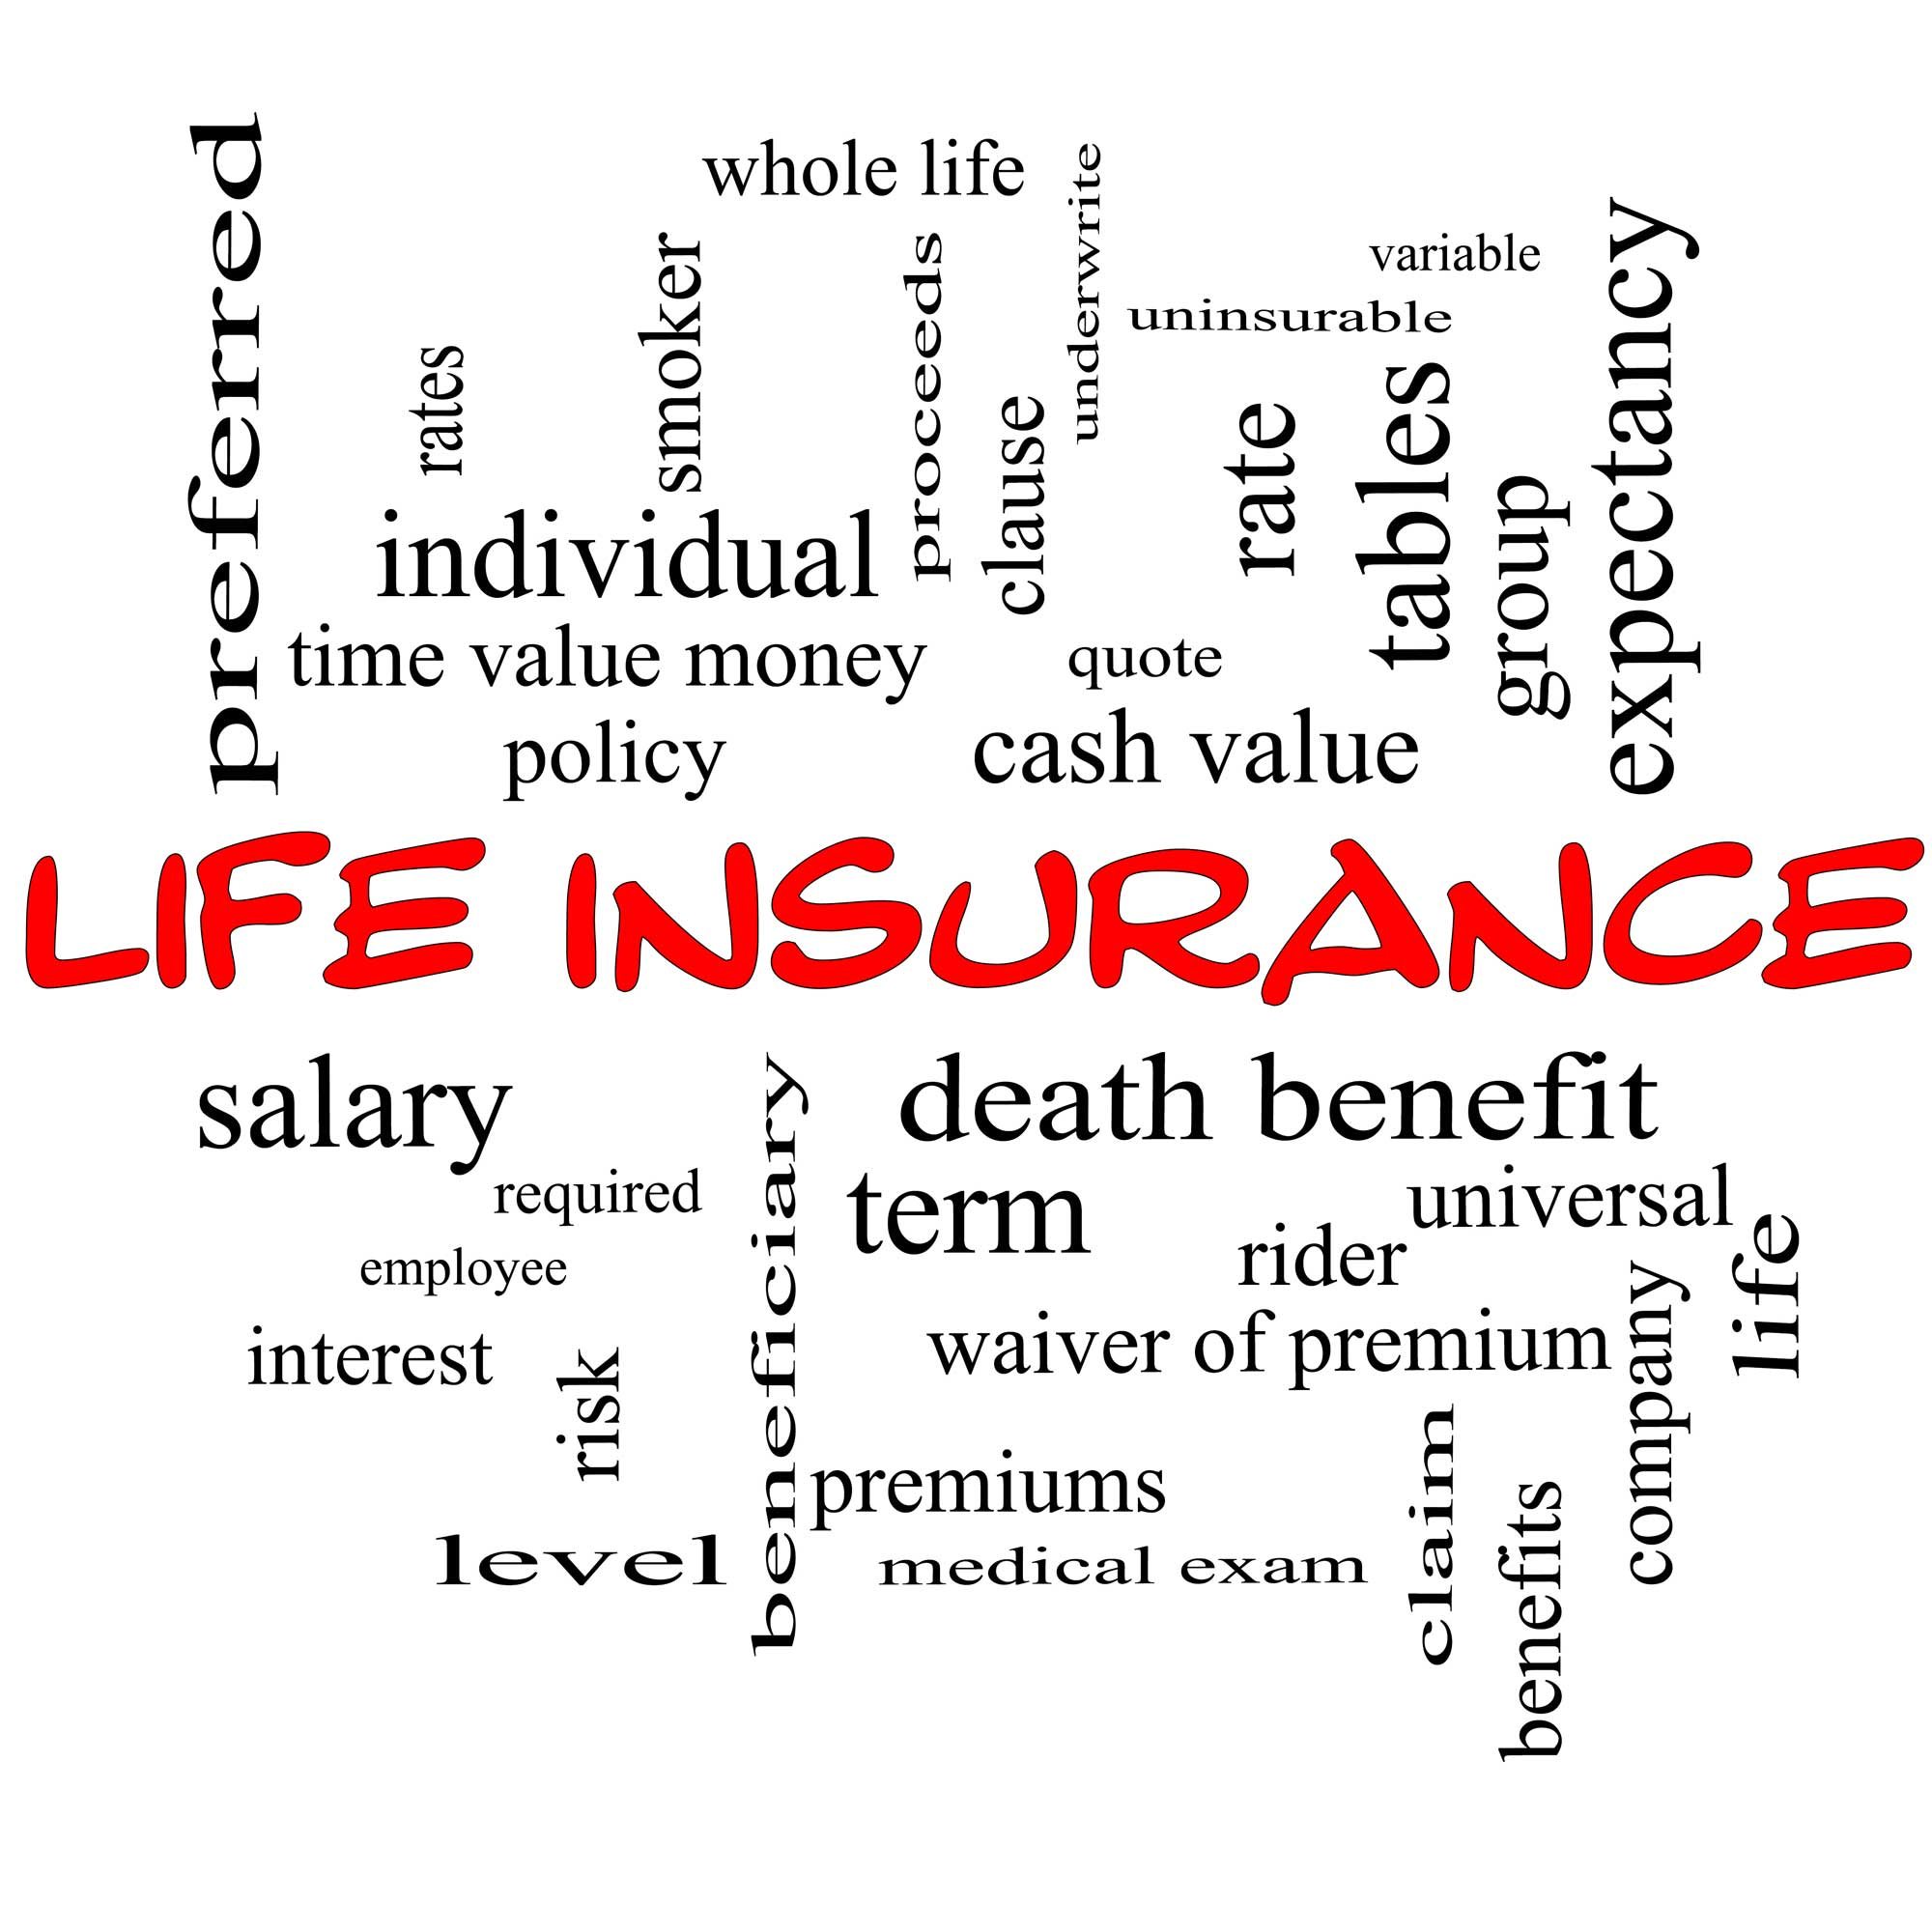 Cheap Whole Life Insurance Quotes Individual Life Insurance  Lfa Insurance